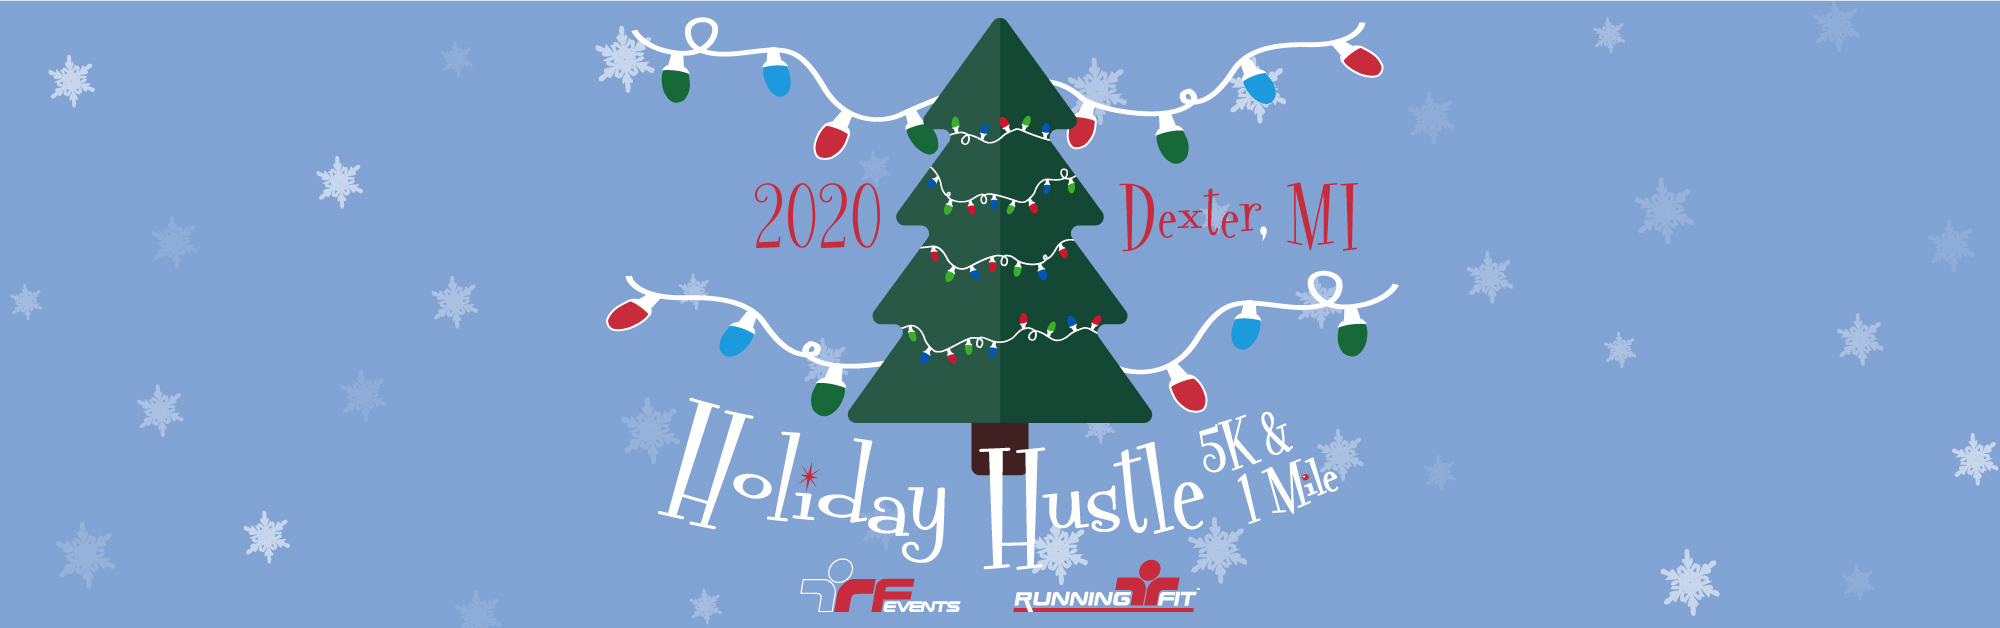 HolidayHustle Web Banner 2020